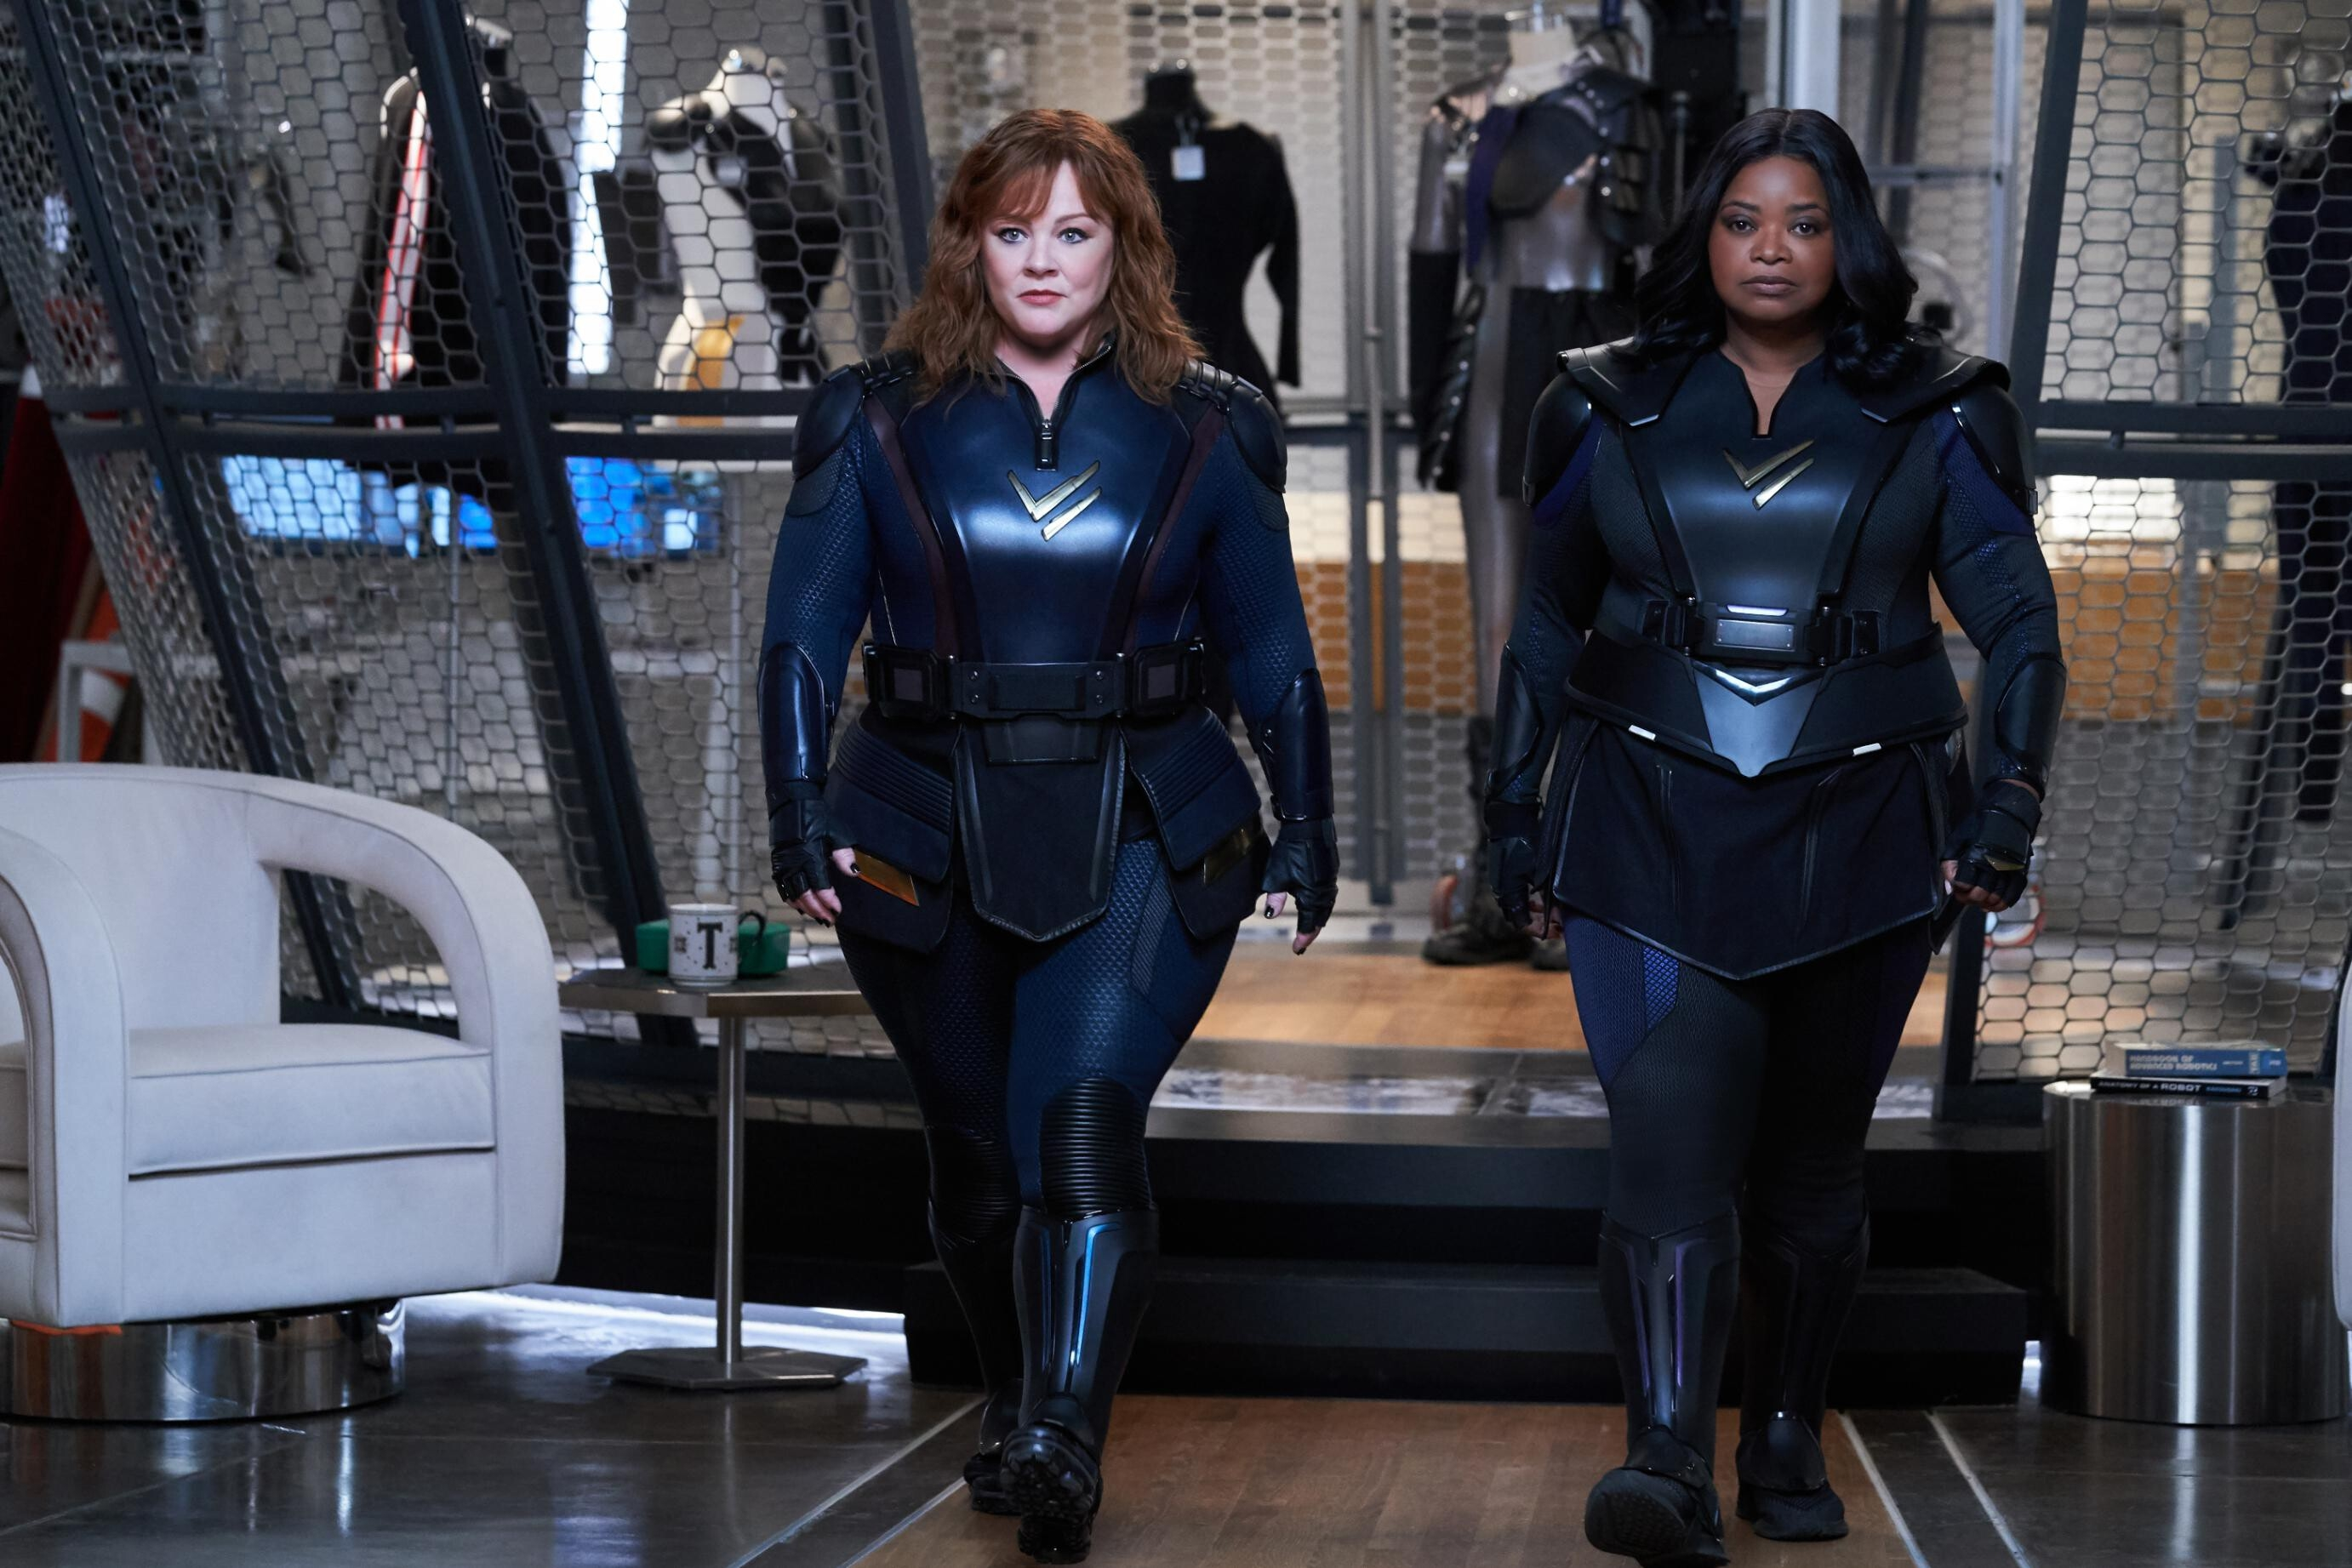 Review: Melissa McCarthy, Octavia Spencer team up in 'Thunder Force'